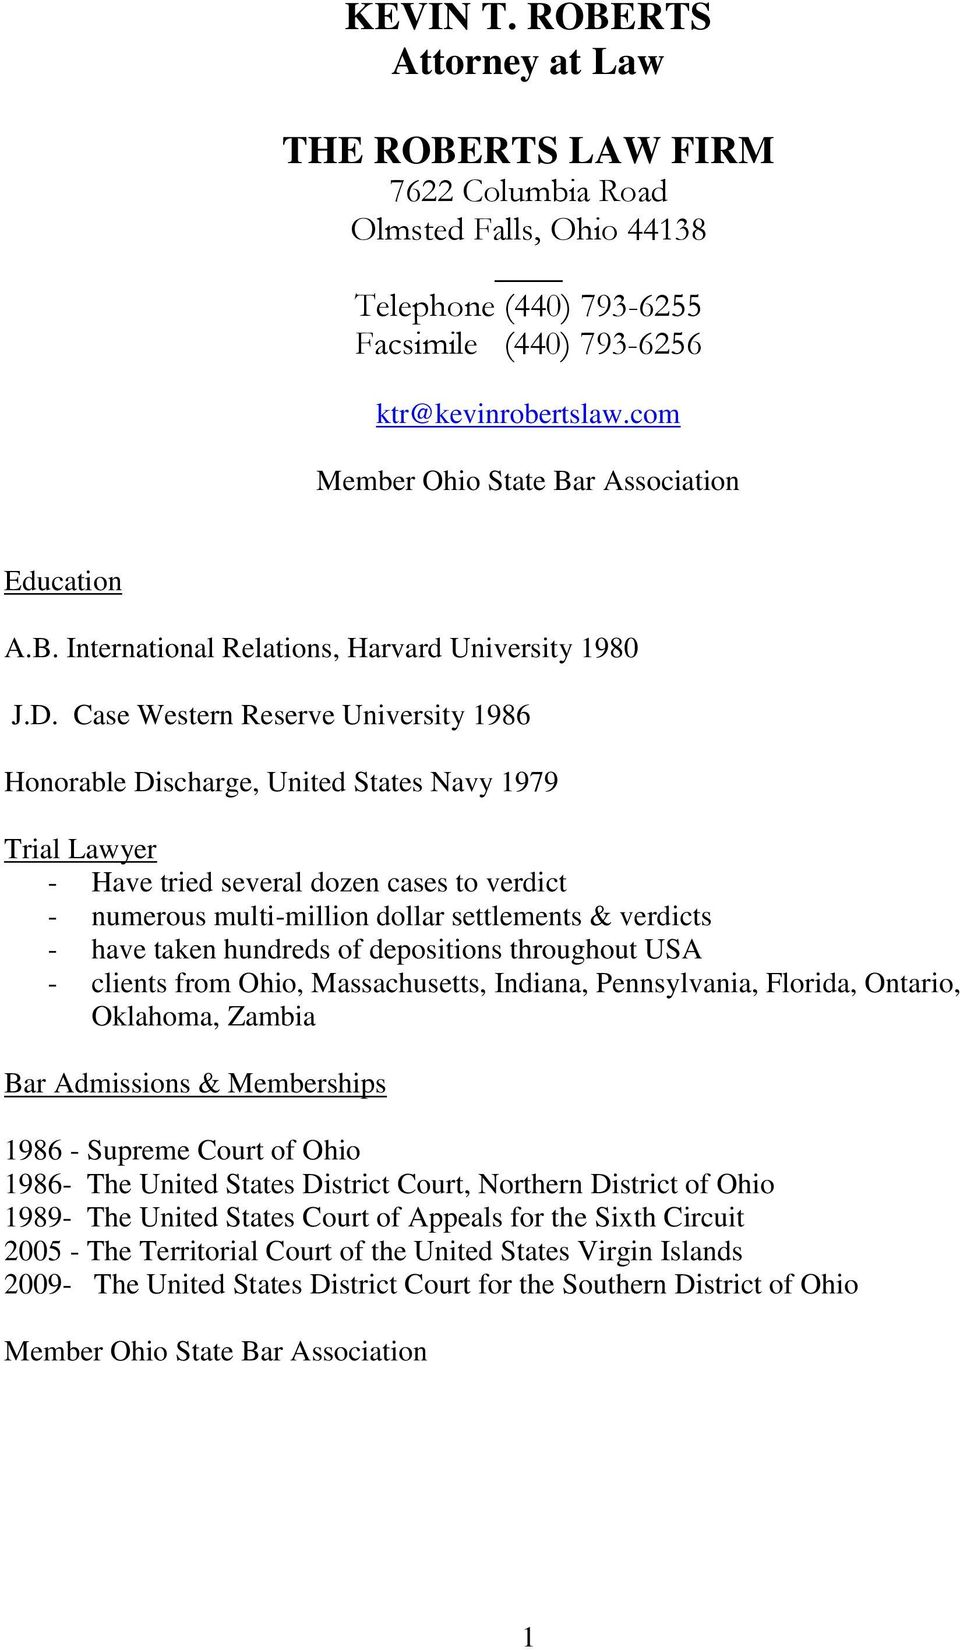 Case Western Reserve University 1986 Honorable Discharge, United States Navy 1979 Trial Lawyer - Have tried several dozen cases to verdict - numerous multi-million dollar settlements & verdicts -